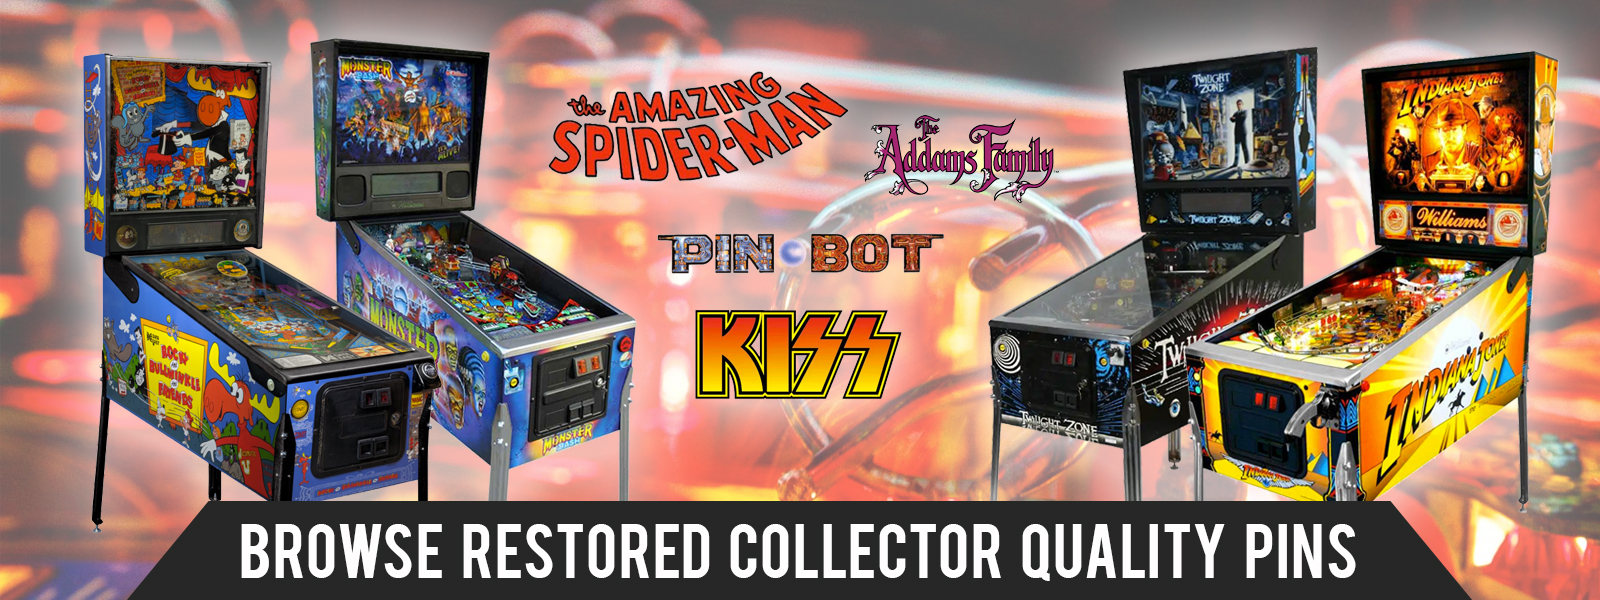 Restored Collector Quality Pinball Machines Absolute Pinball